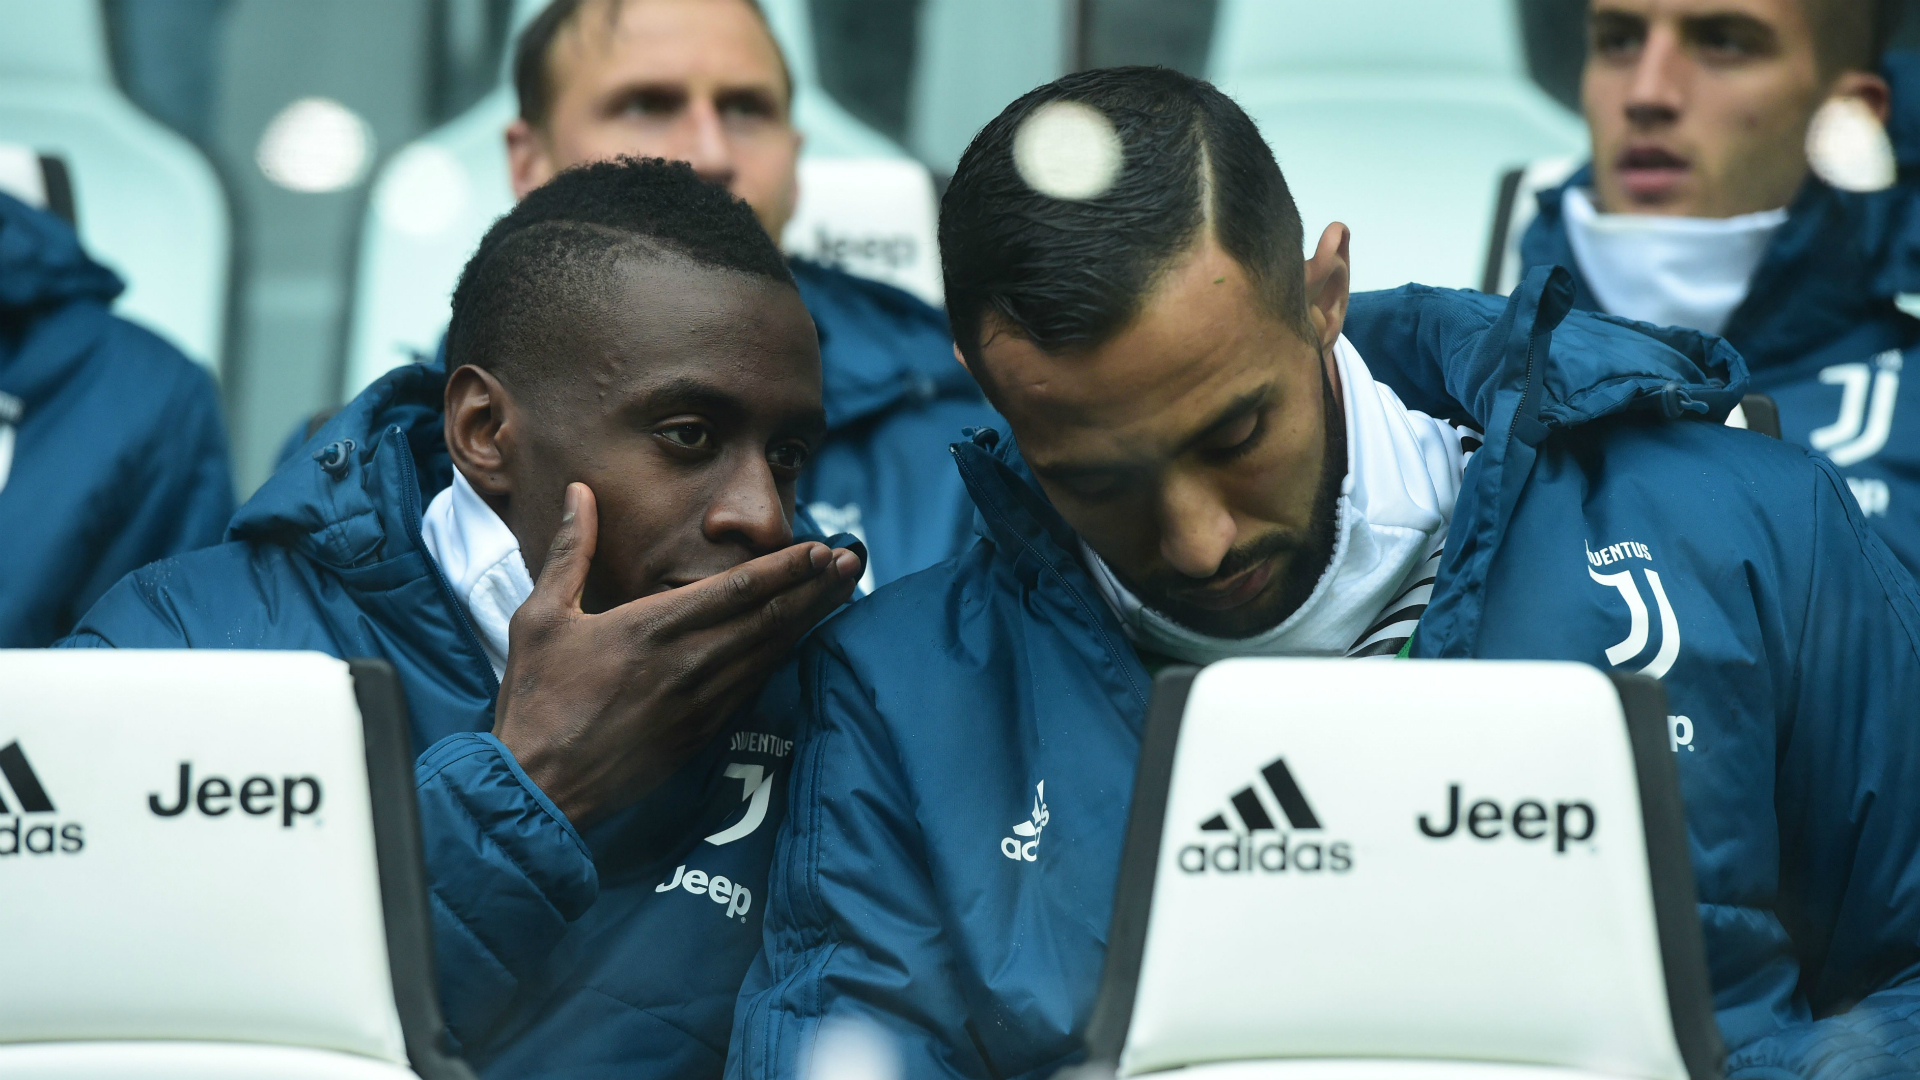 'Allegri talked some bullsh*t but he was right about you' – Benatia praises Juve's 'essential' Matuidi